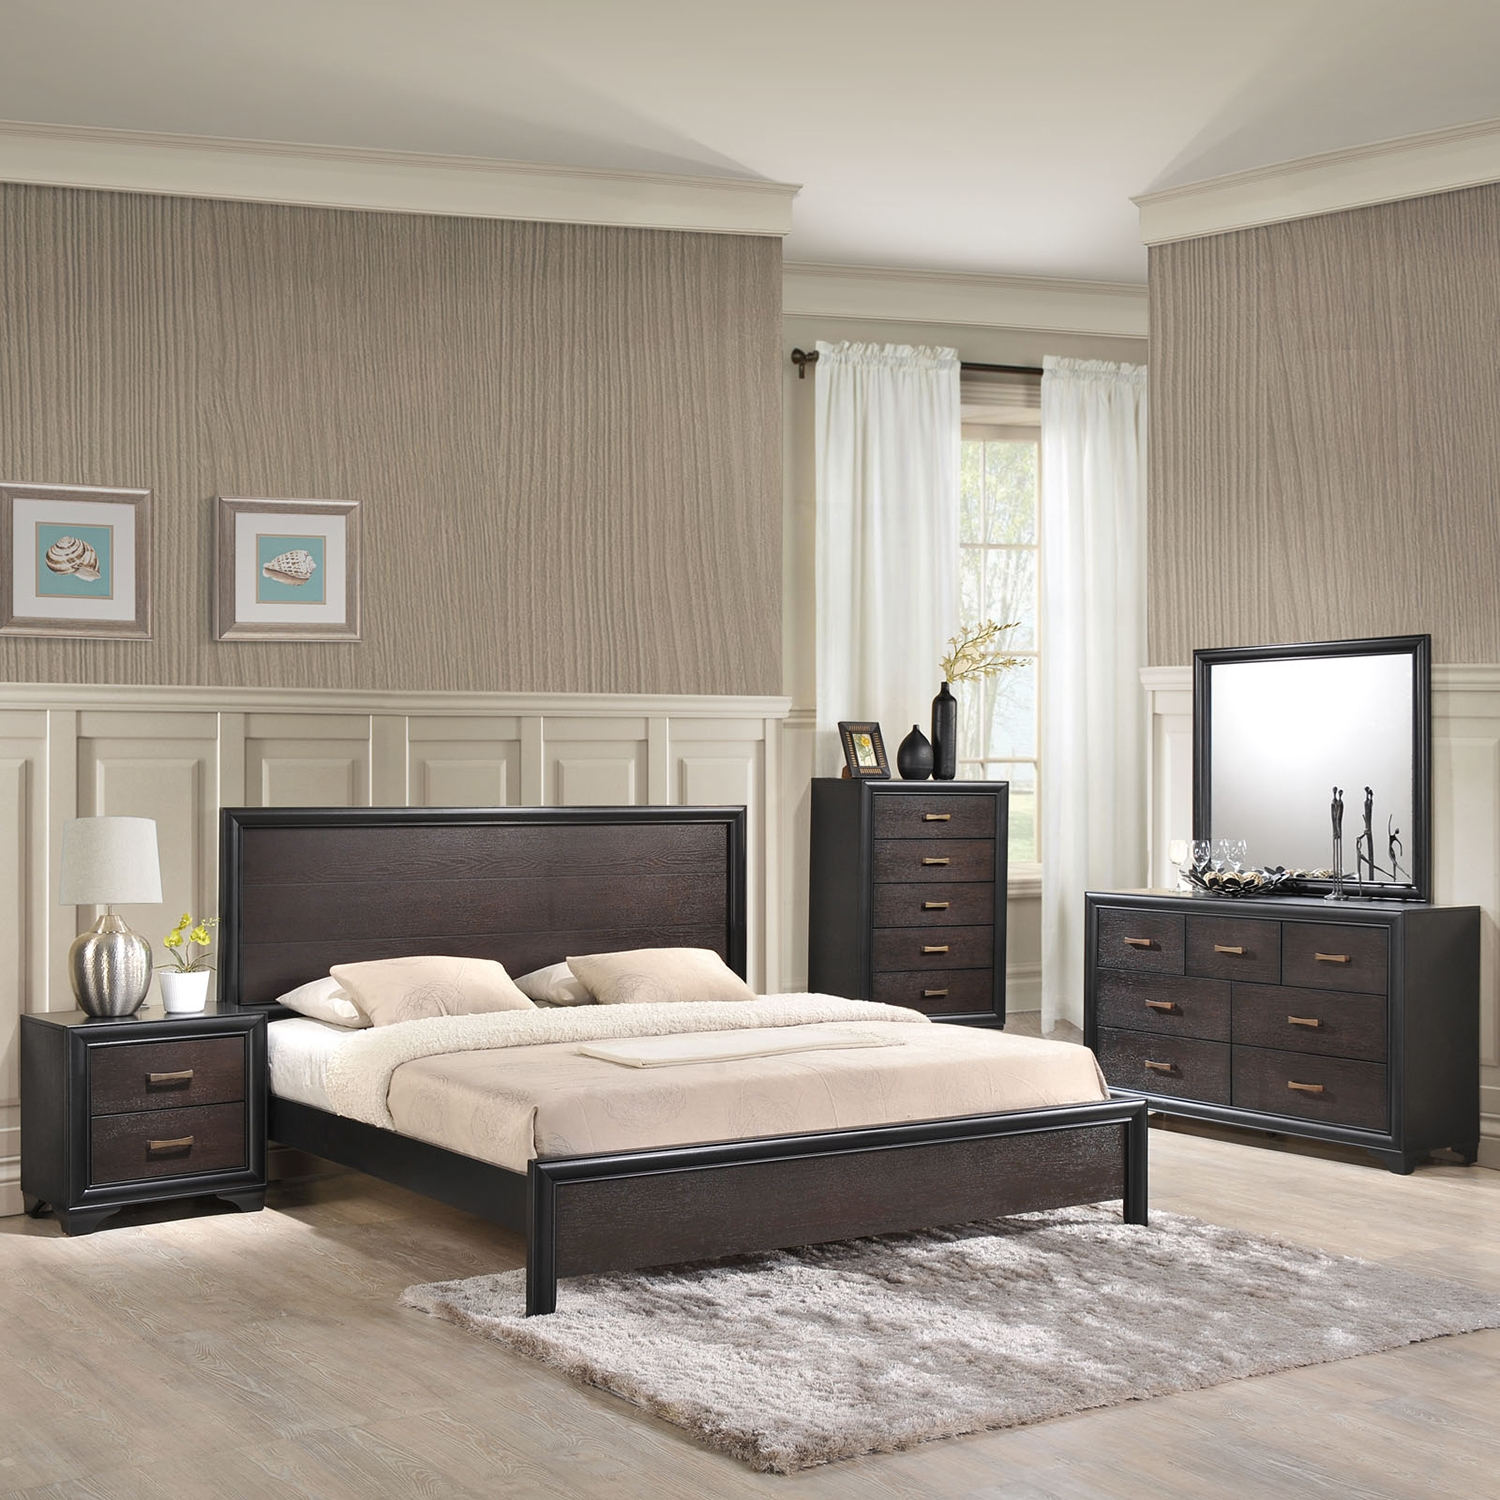 Madison 5 Pieces Walnut Bedroom Set - EEI-MOD-53-WAL-5PC-SET